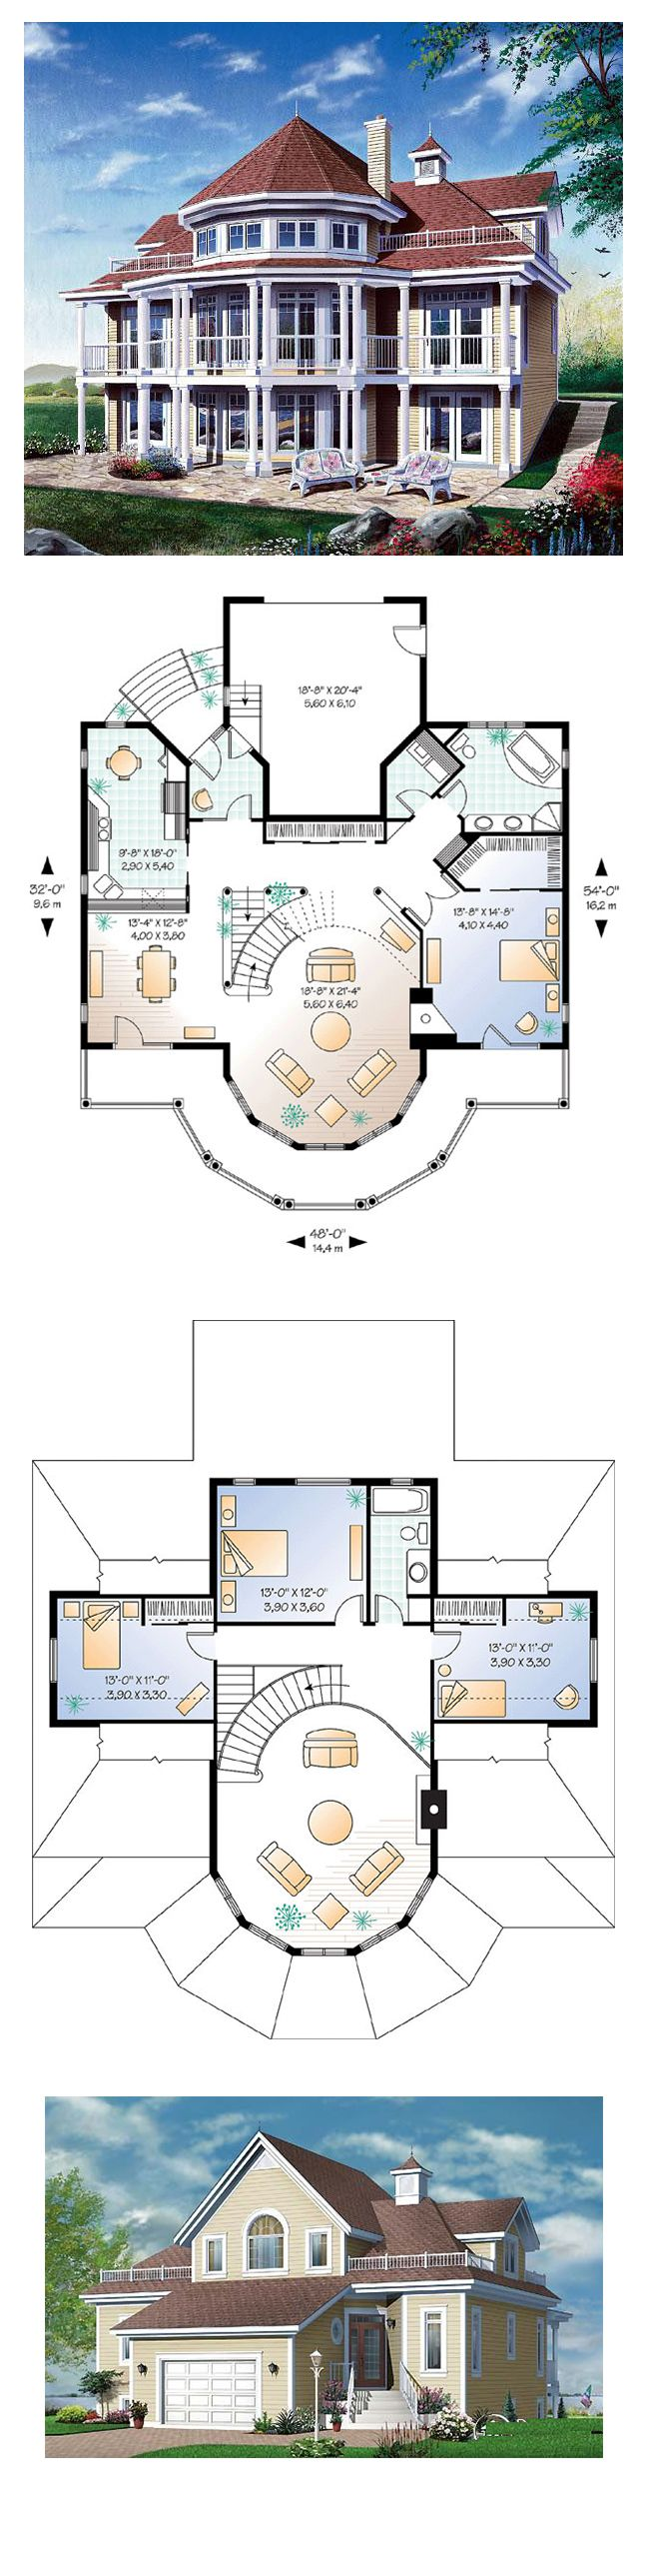 Coastal House Plan 64807 | Total Living Area: 2348 sq. ft., 4 bedrooms & 2 bathrooms. Distintive elements: Exterior covered balcony on two levels and accessible from family room and master bedroom, see-thru fireplace shared between family room and master bedroom, large front entrance foyer, access to basement from garage, corner bath and dual sinks in bathroom on main level. #coastalstyle #houseplan